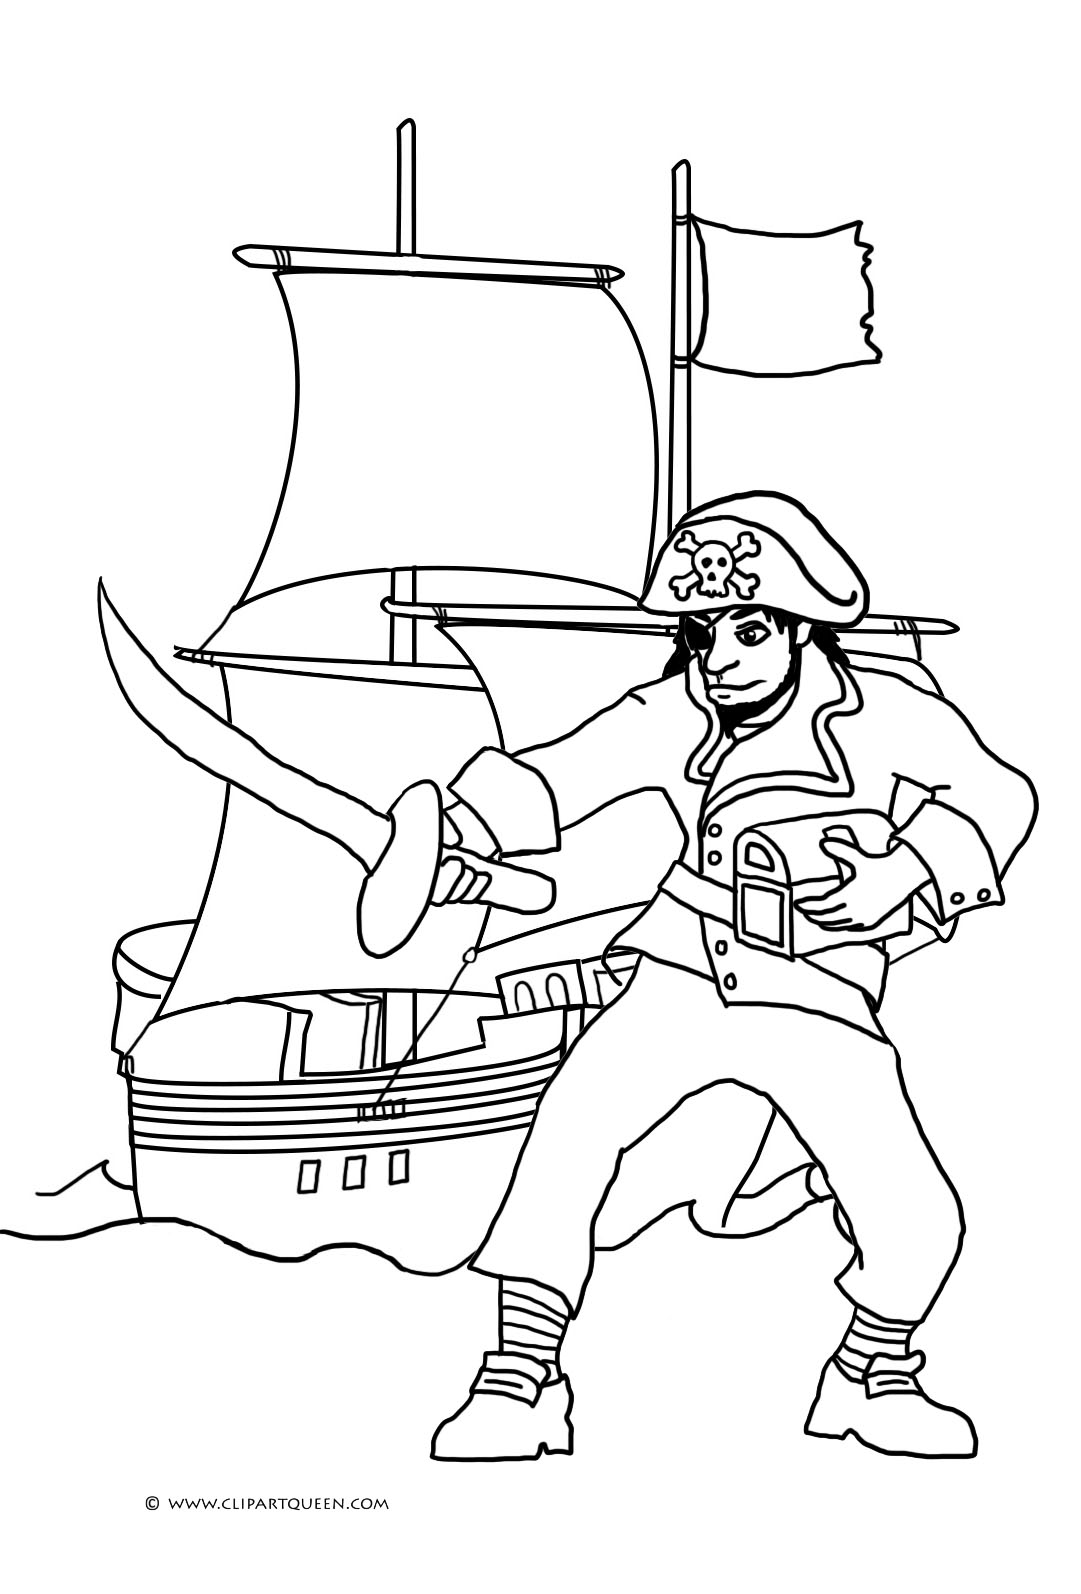 pirate with sword and pirate ship